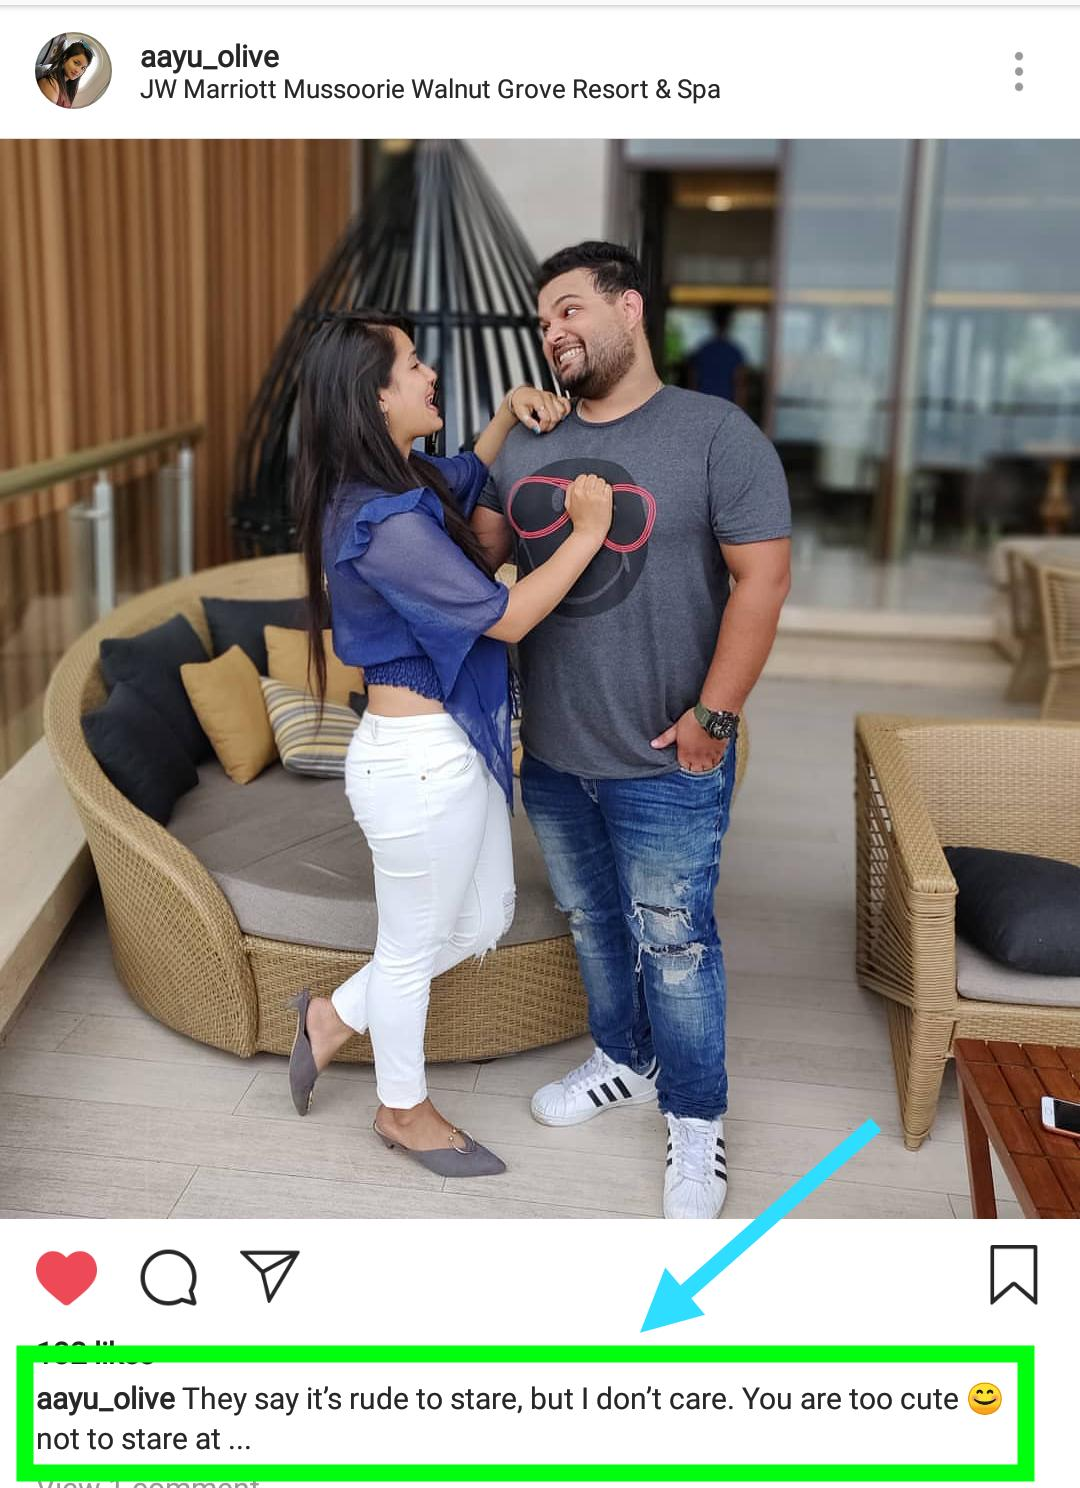 Couple goals Instagram captions, Instagram captions for couple goals, cute Instagram captions, Instagram cute captions, Best Instagram captions, Insta captions, Best instagram captions,Best instacaptions